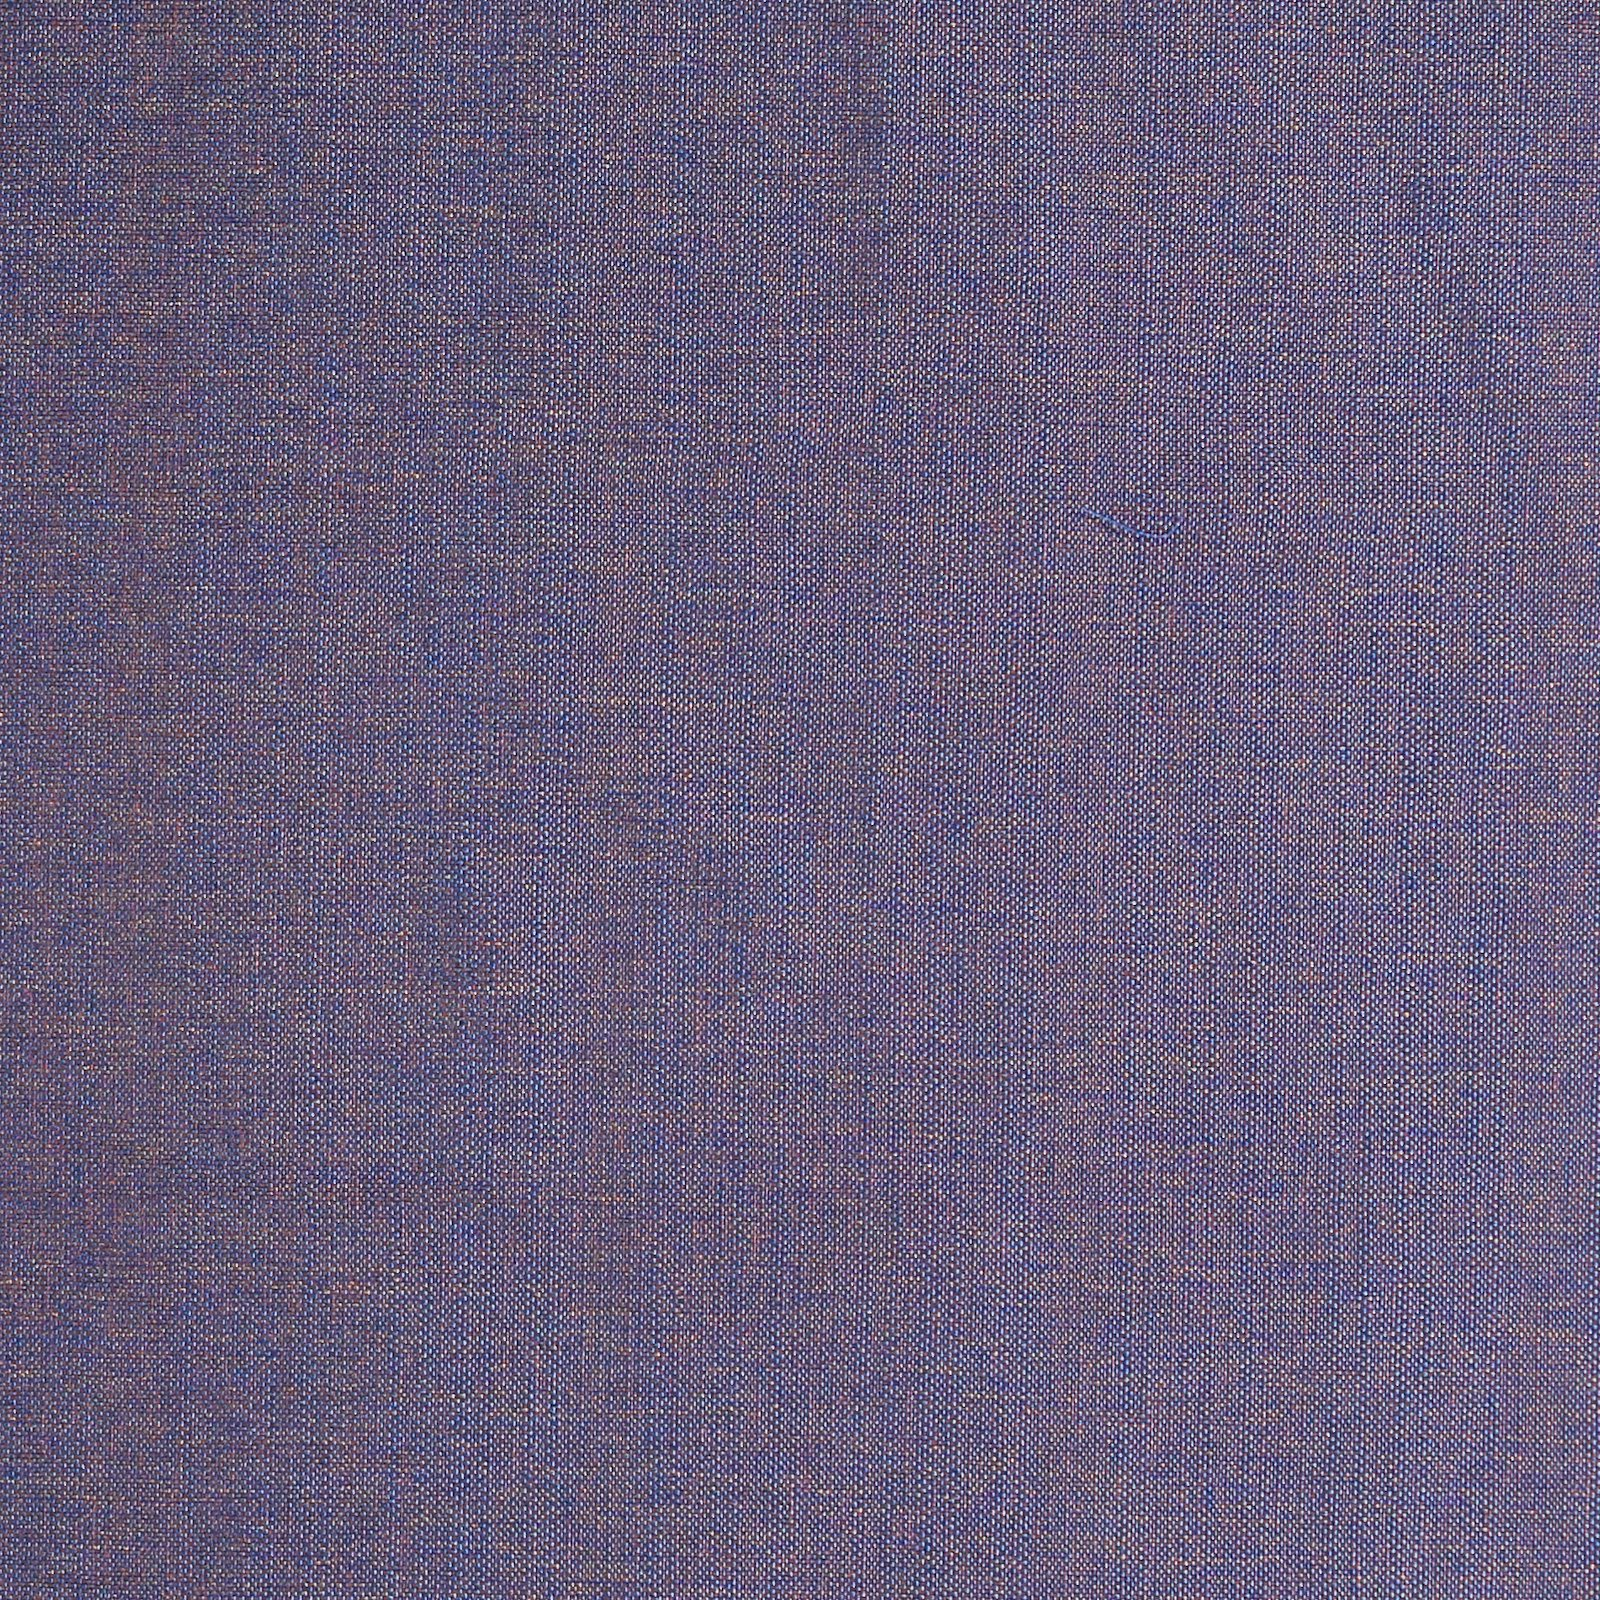 Upholstery fabric cobalt blue/caramel 824156_pack_solid